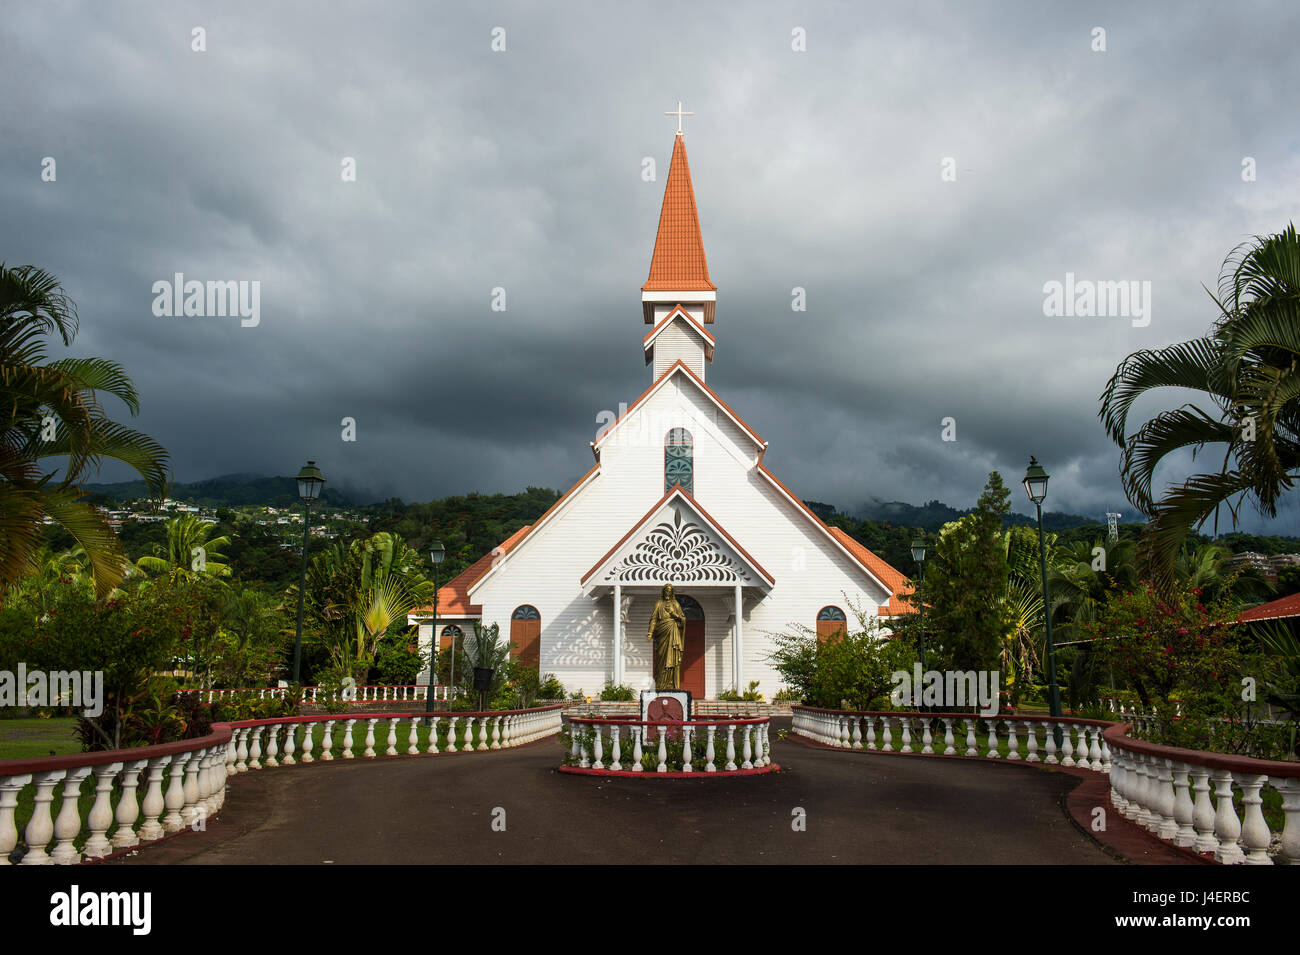 Tahiti, Society Islands, French Polynesia, Pacific - Stock Image